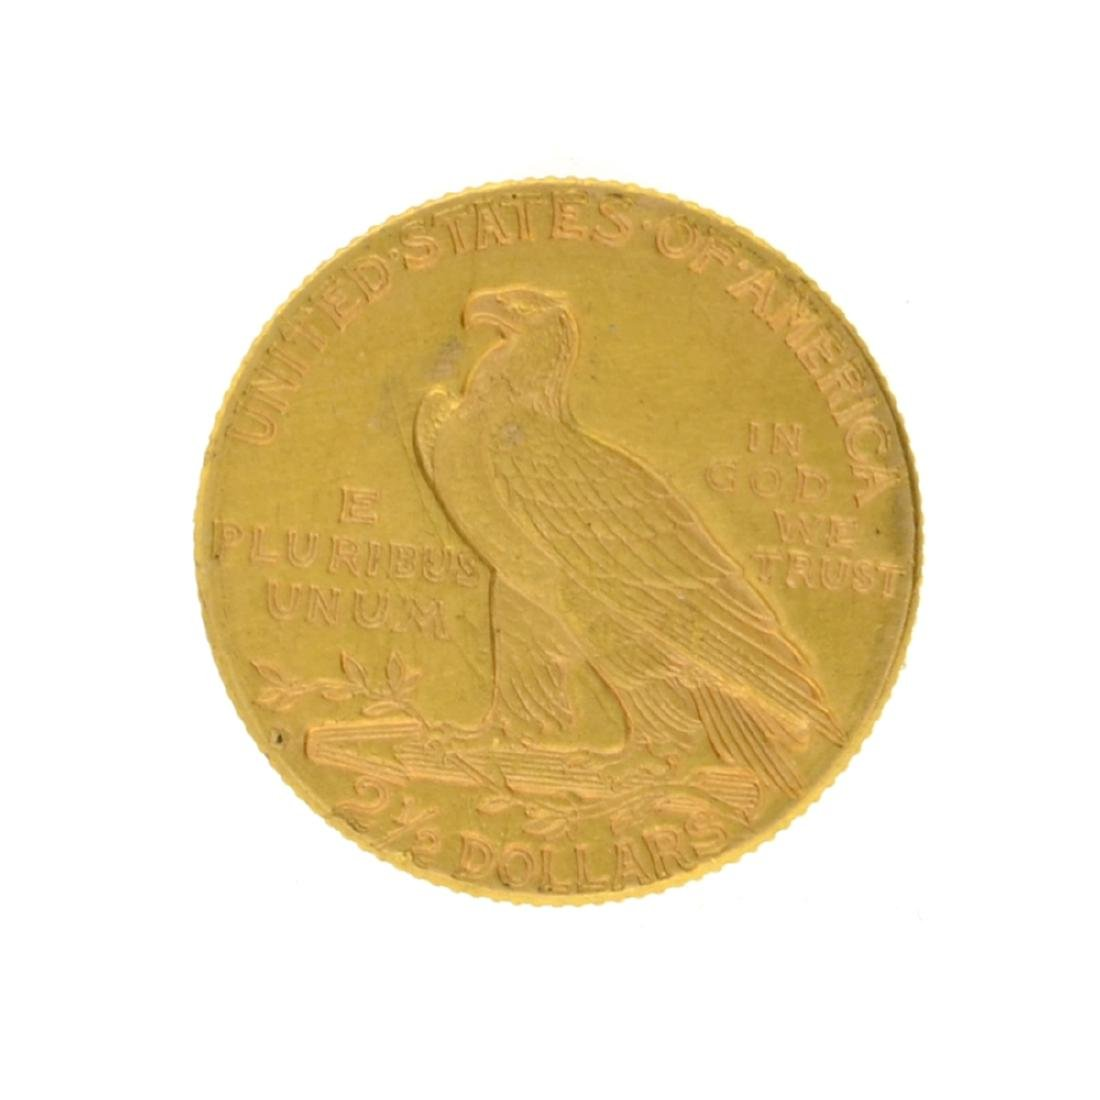 1925-D $2.50 Indian Head Gold Coin - 2